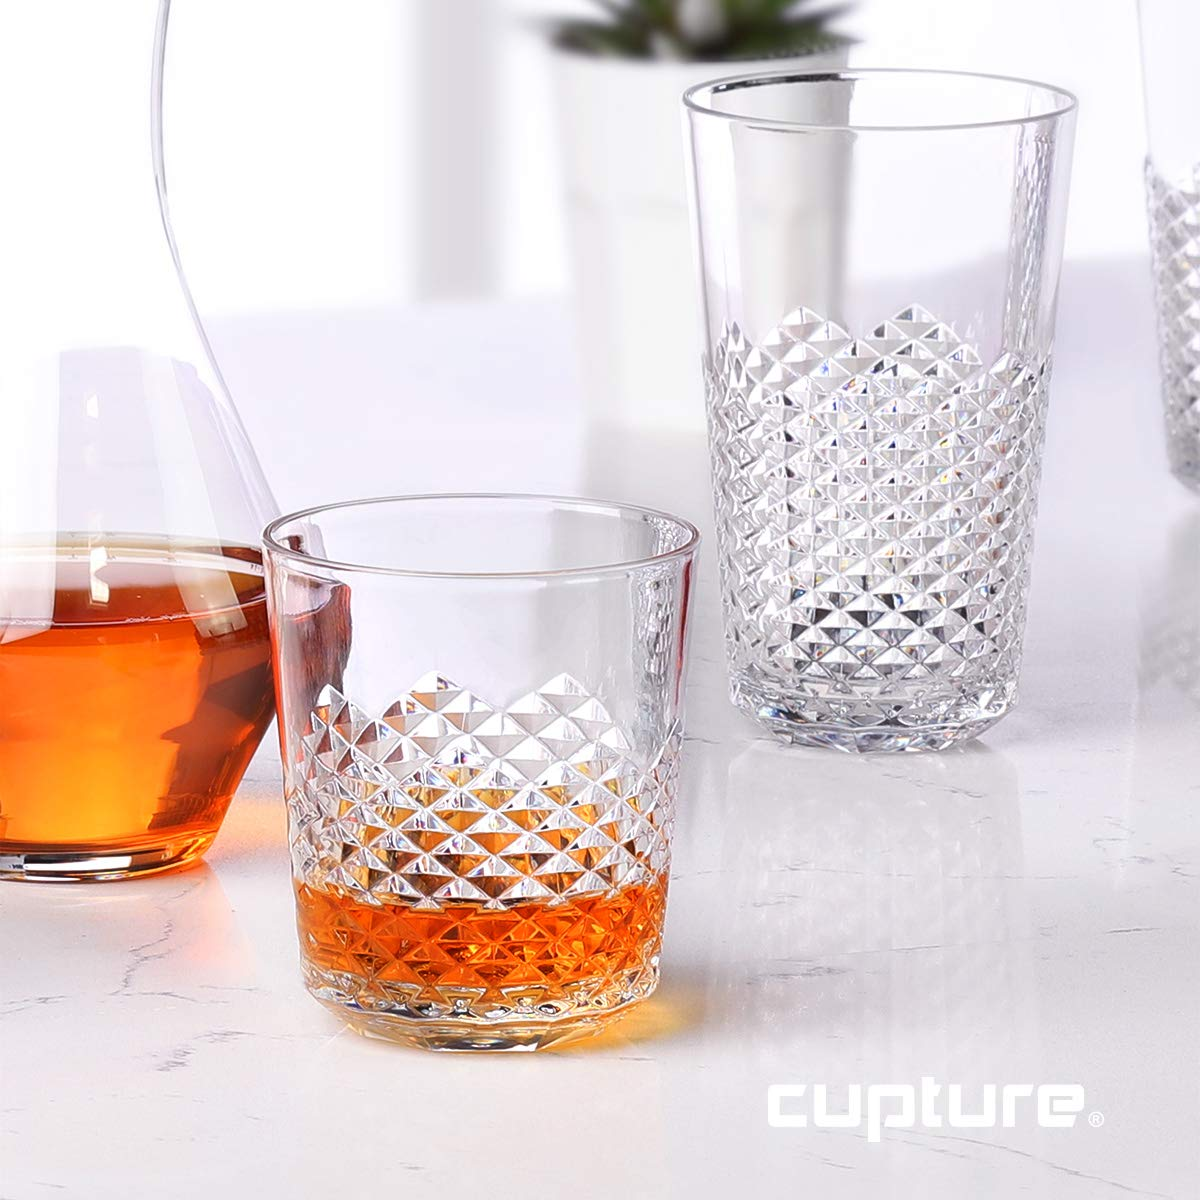 Cupture Diamond Plastic Tumblers BPA Free, 24 oz / 14 oz, 8-Pack (Clear) by Cupture (Image #3)